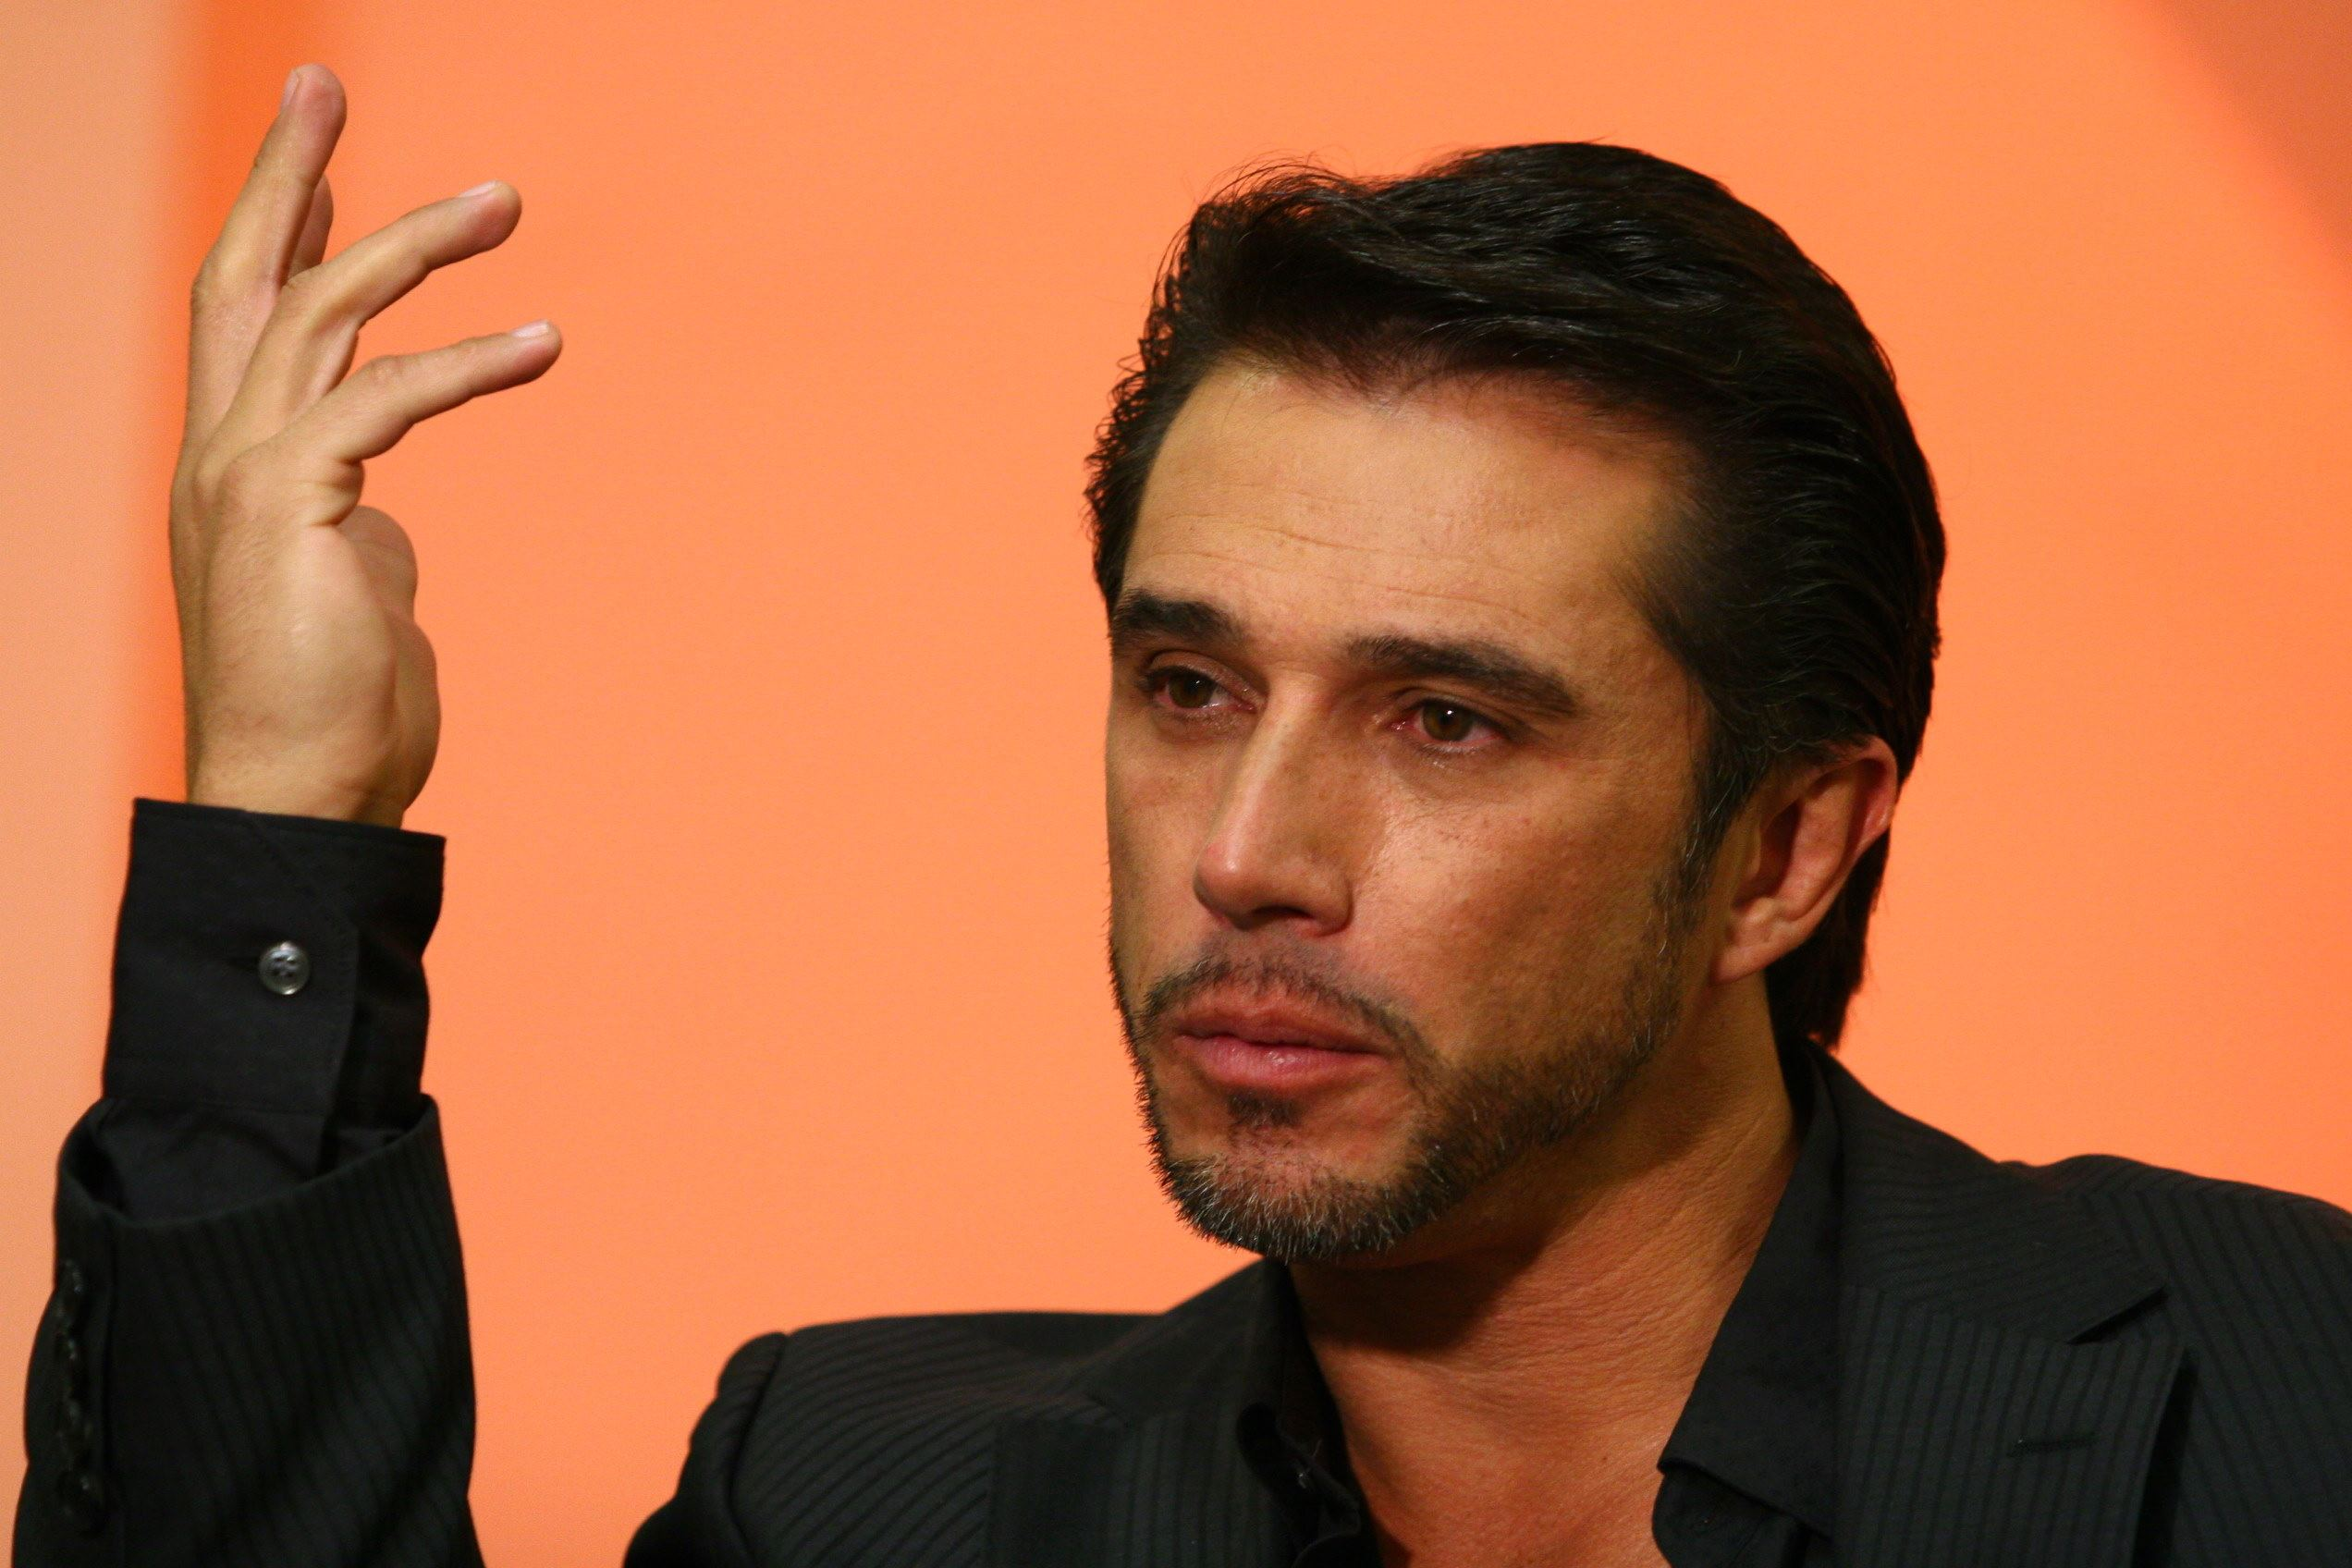 El actor Sergio Mayer